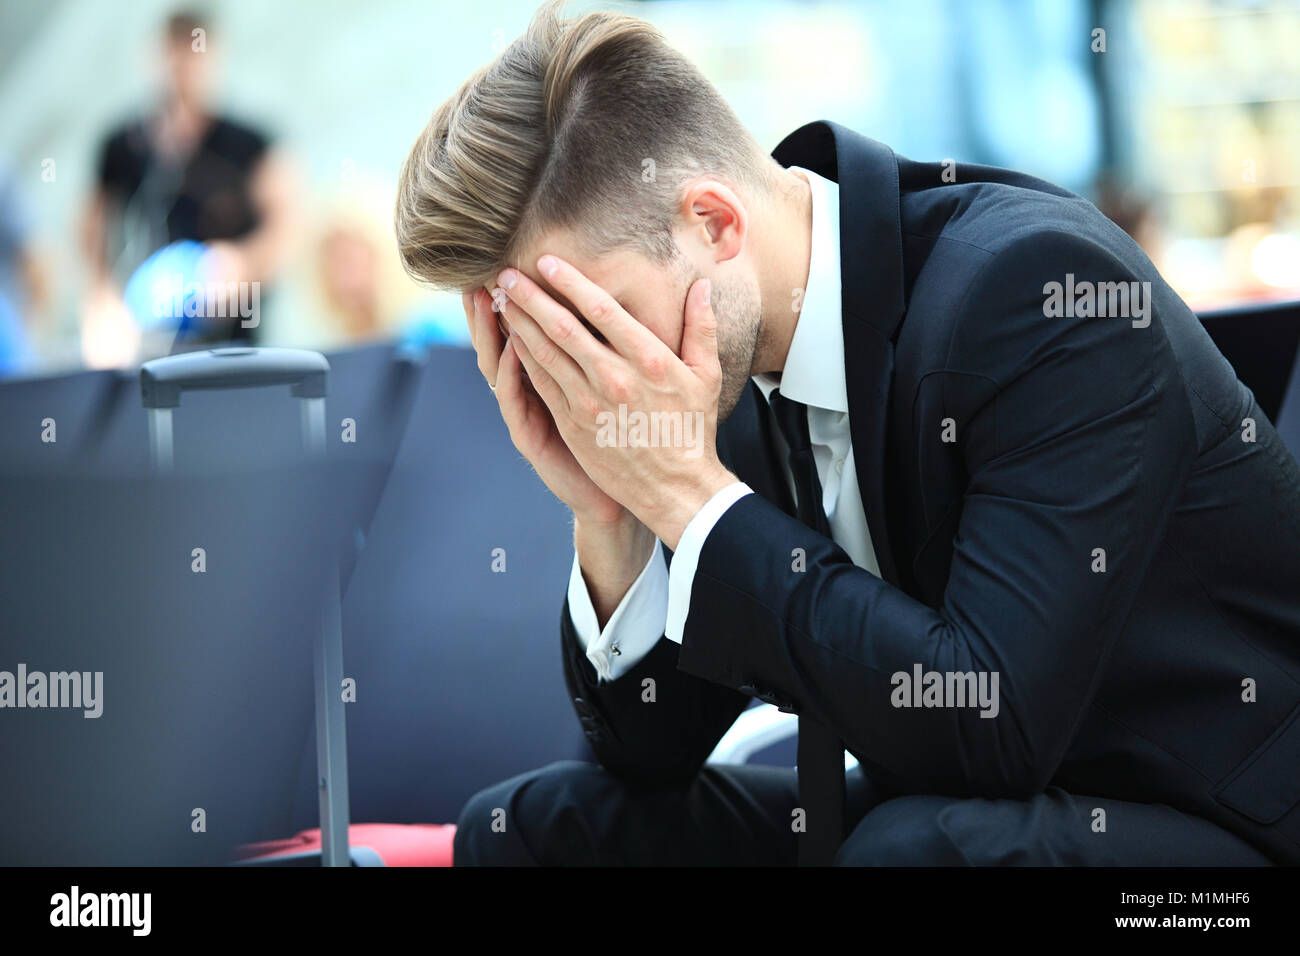 delayed flight - Stock Image